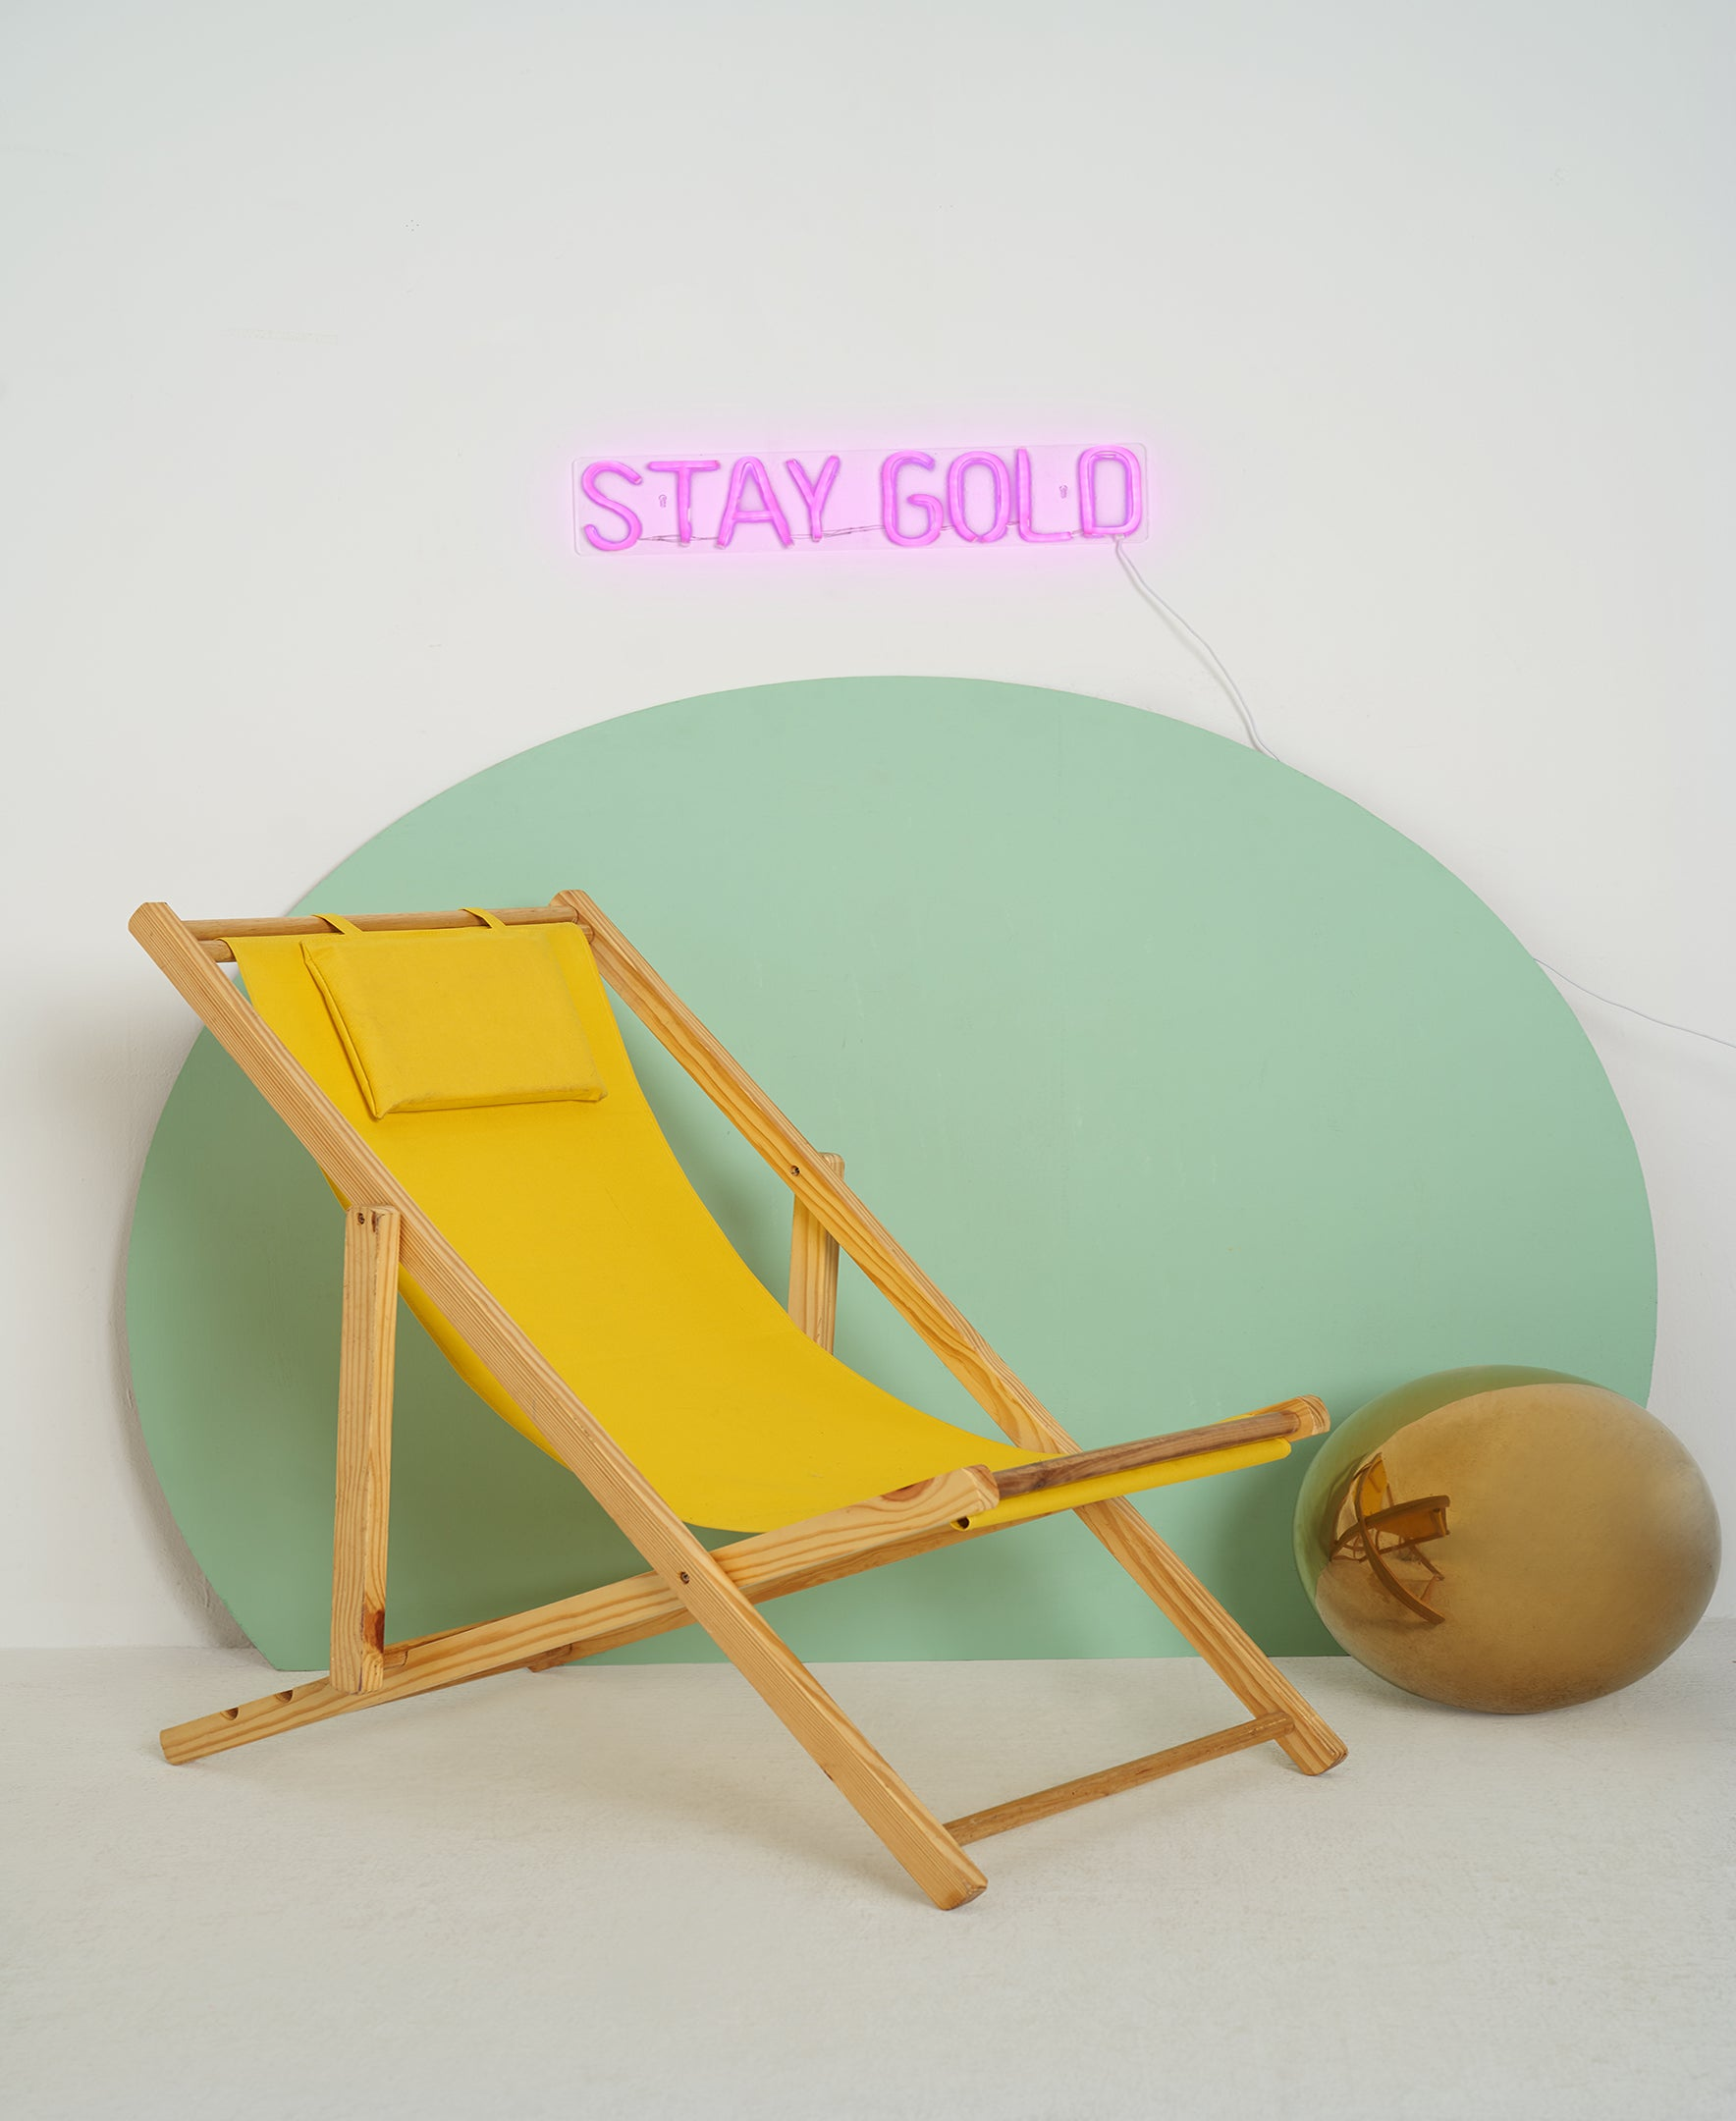 STAY GOLD LED Neon Wall Sign - Cocus Pocus